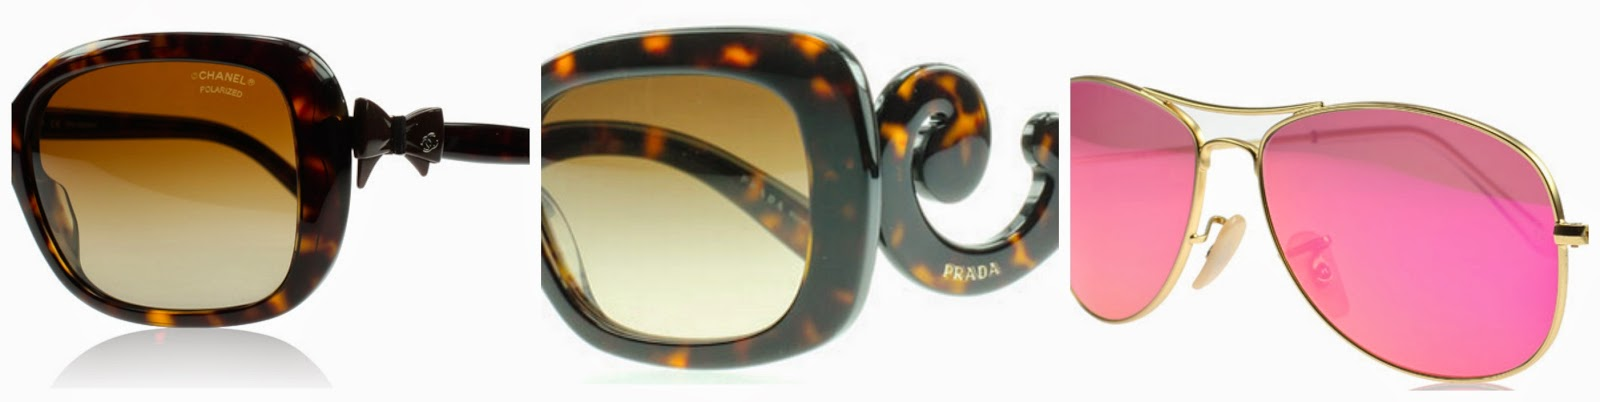 Designer Sunglasses from Sunglasses Shop